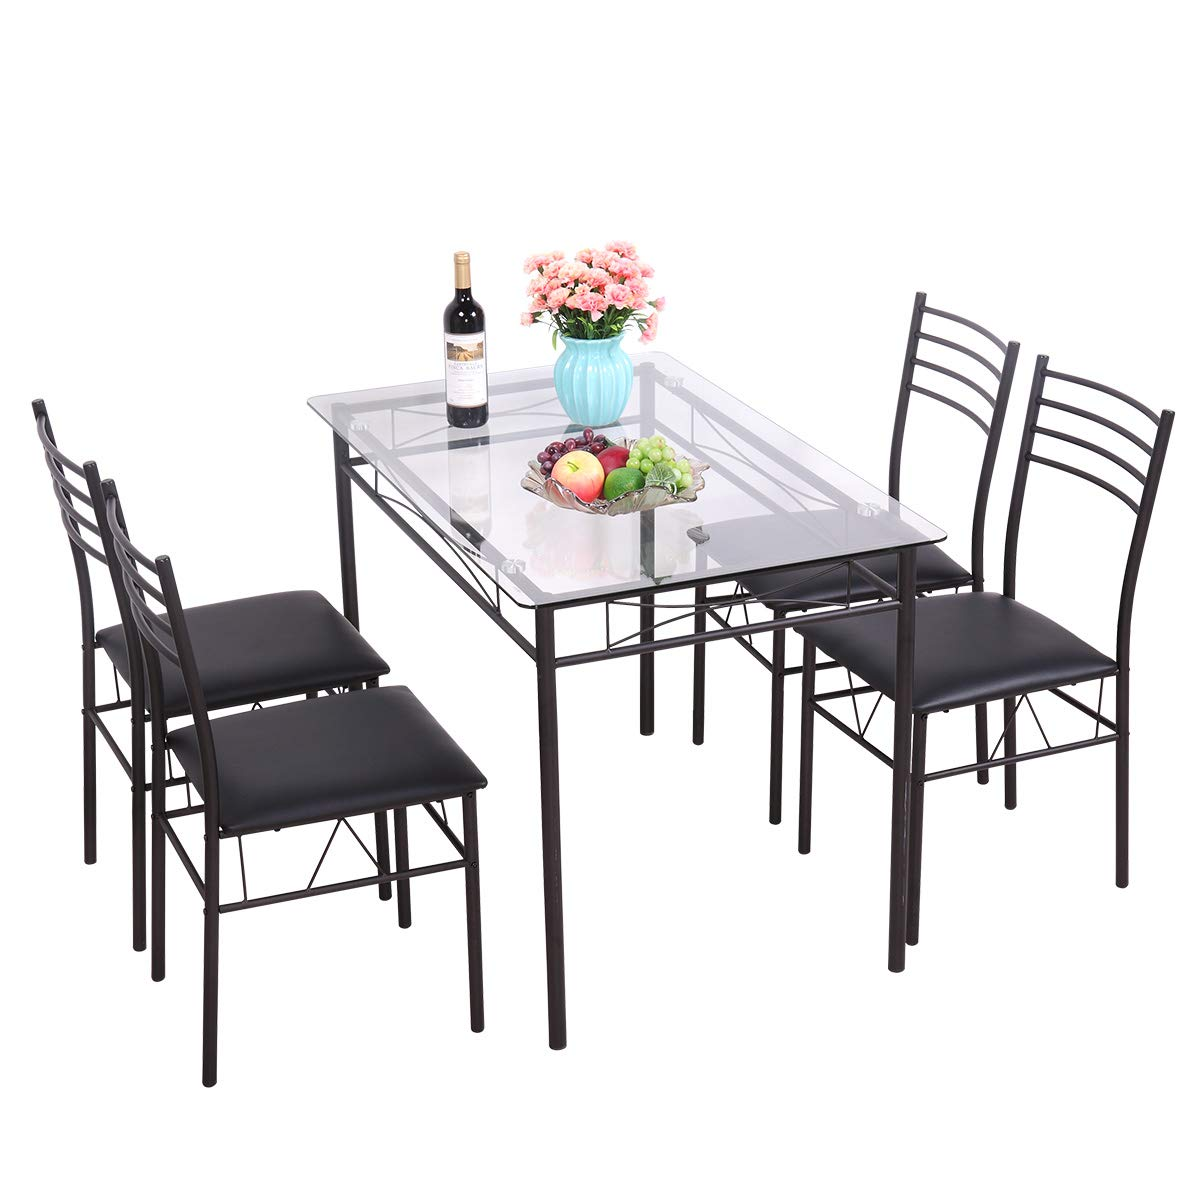 Black 5 Piece Dining Table Set Tempered Glass Top Table w/ 4 Upholstered Chairs Kitchen Furniture by BWM.Co